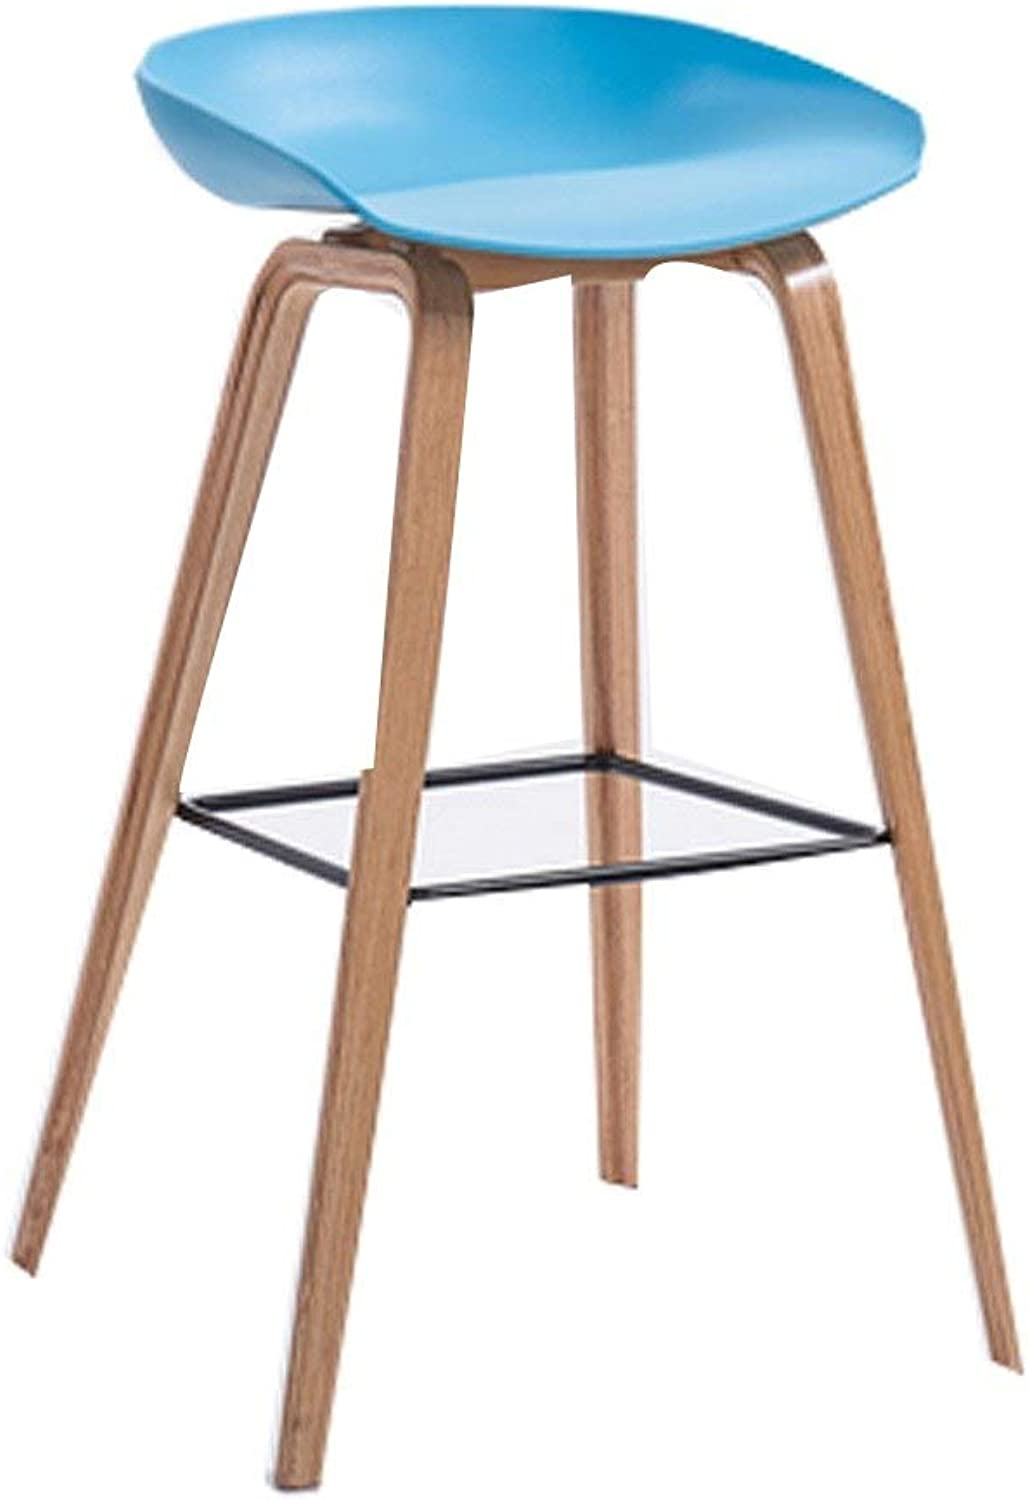 Barstool Modern Nordic bar Chair Solid Wood Home high stools Removable 5 colors 2 Sizes (color   bluee, Size   64cm)